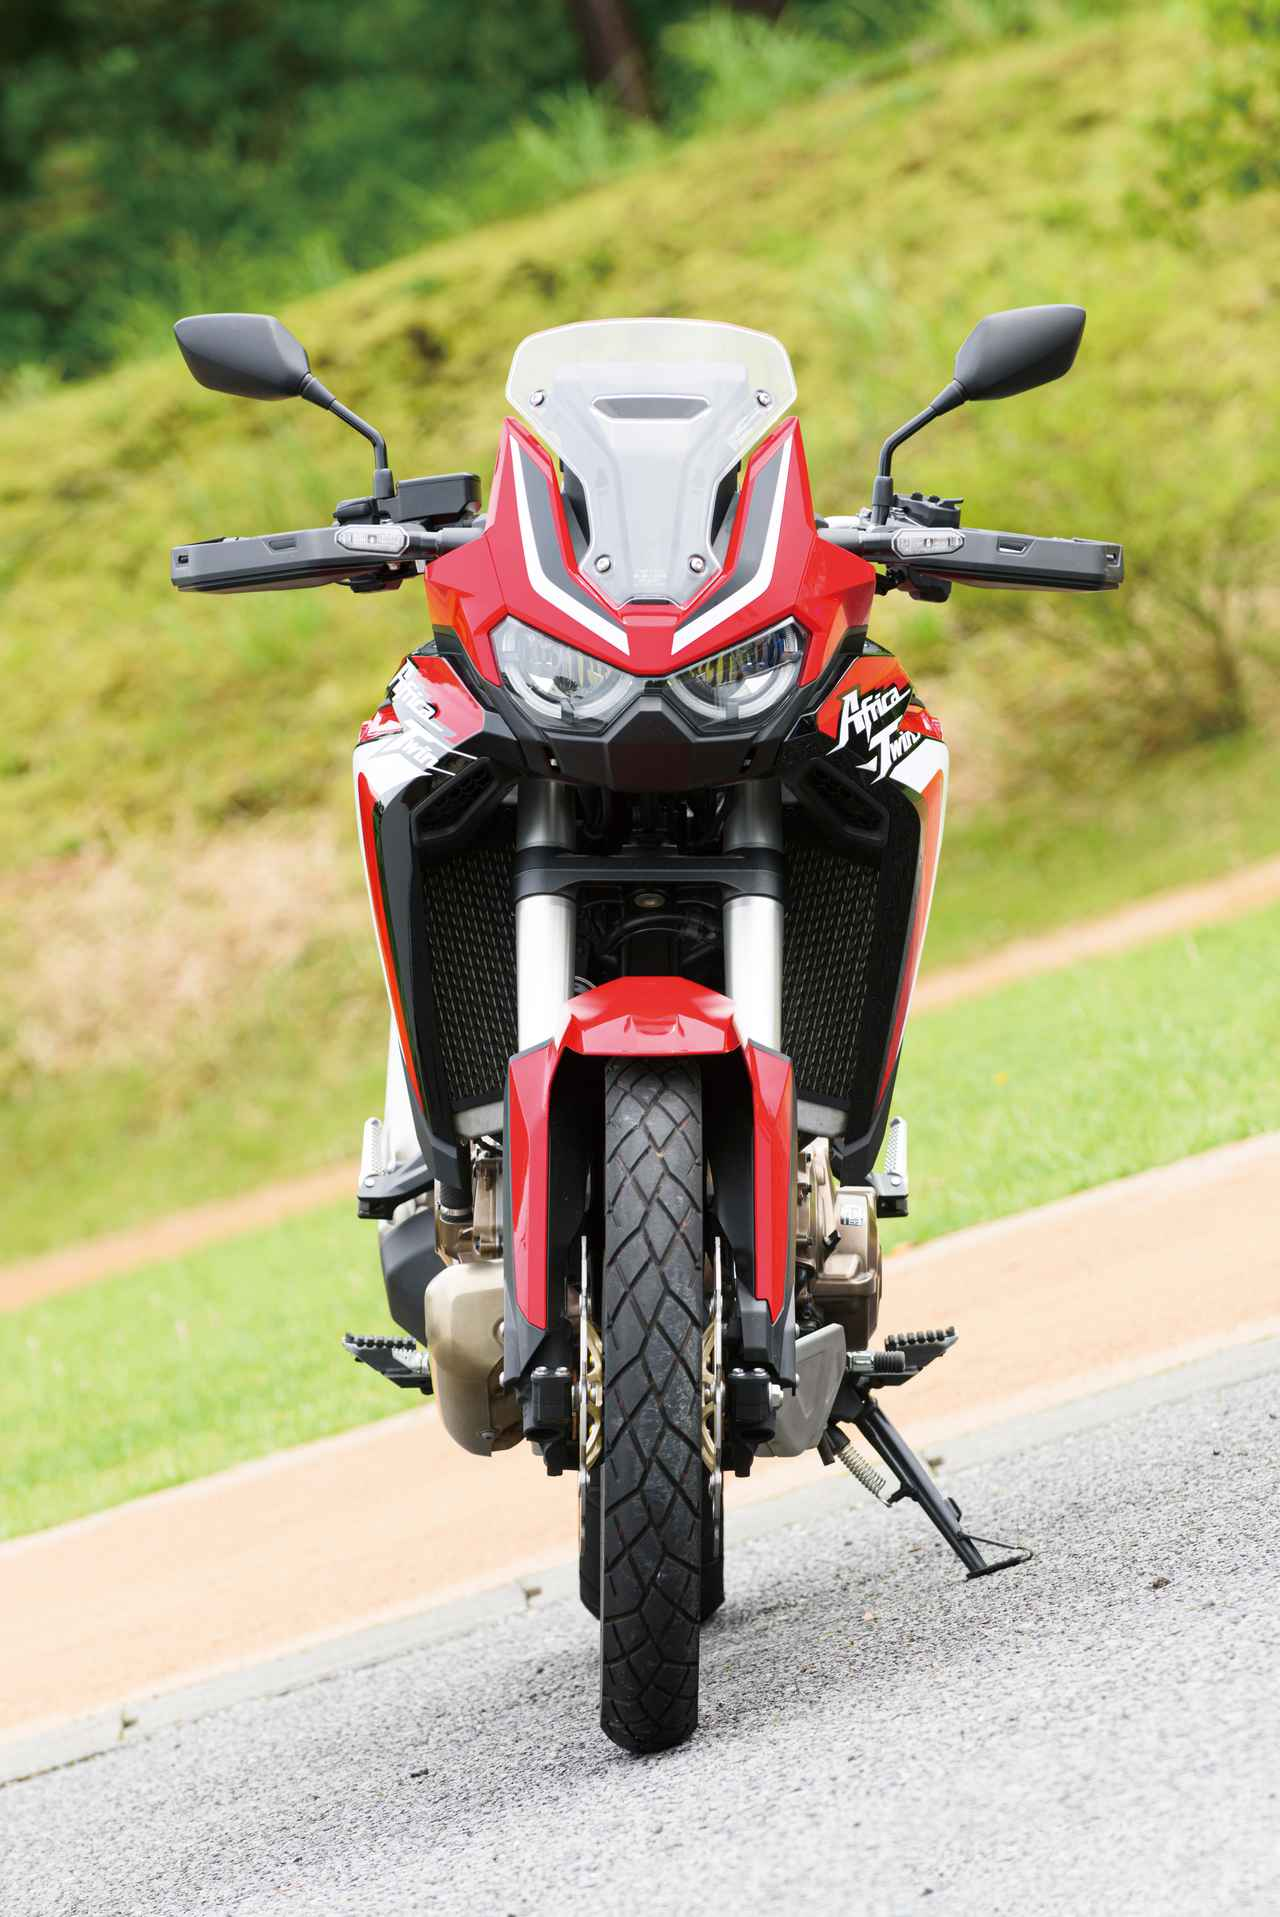 Images : 2番目の画像 - Honda CRF1100L AfricaTwin - LAWRENCE - Motorcycle x Cars + α = Your Life.